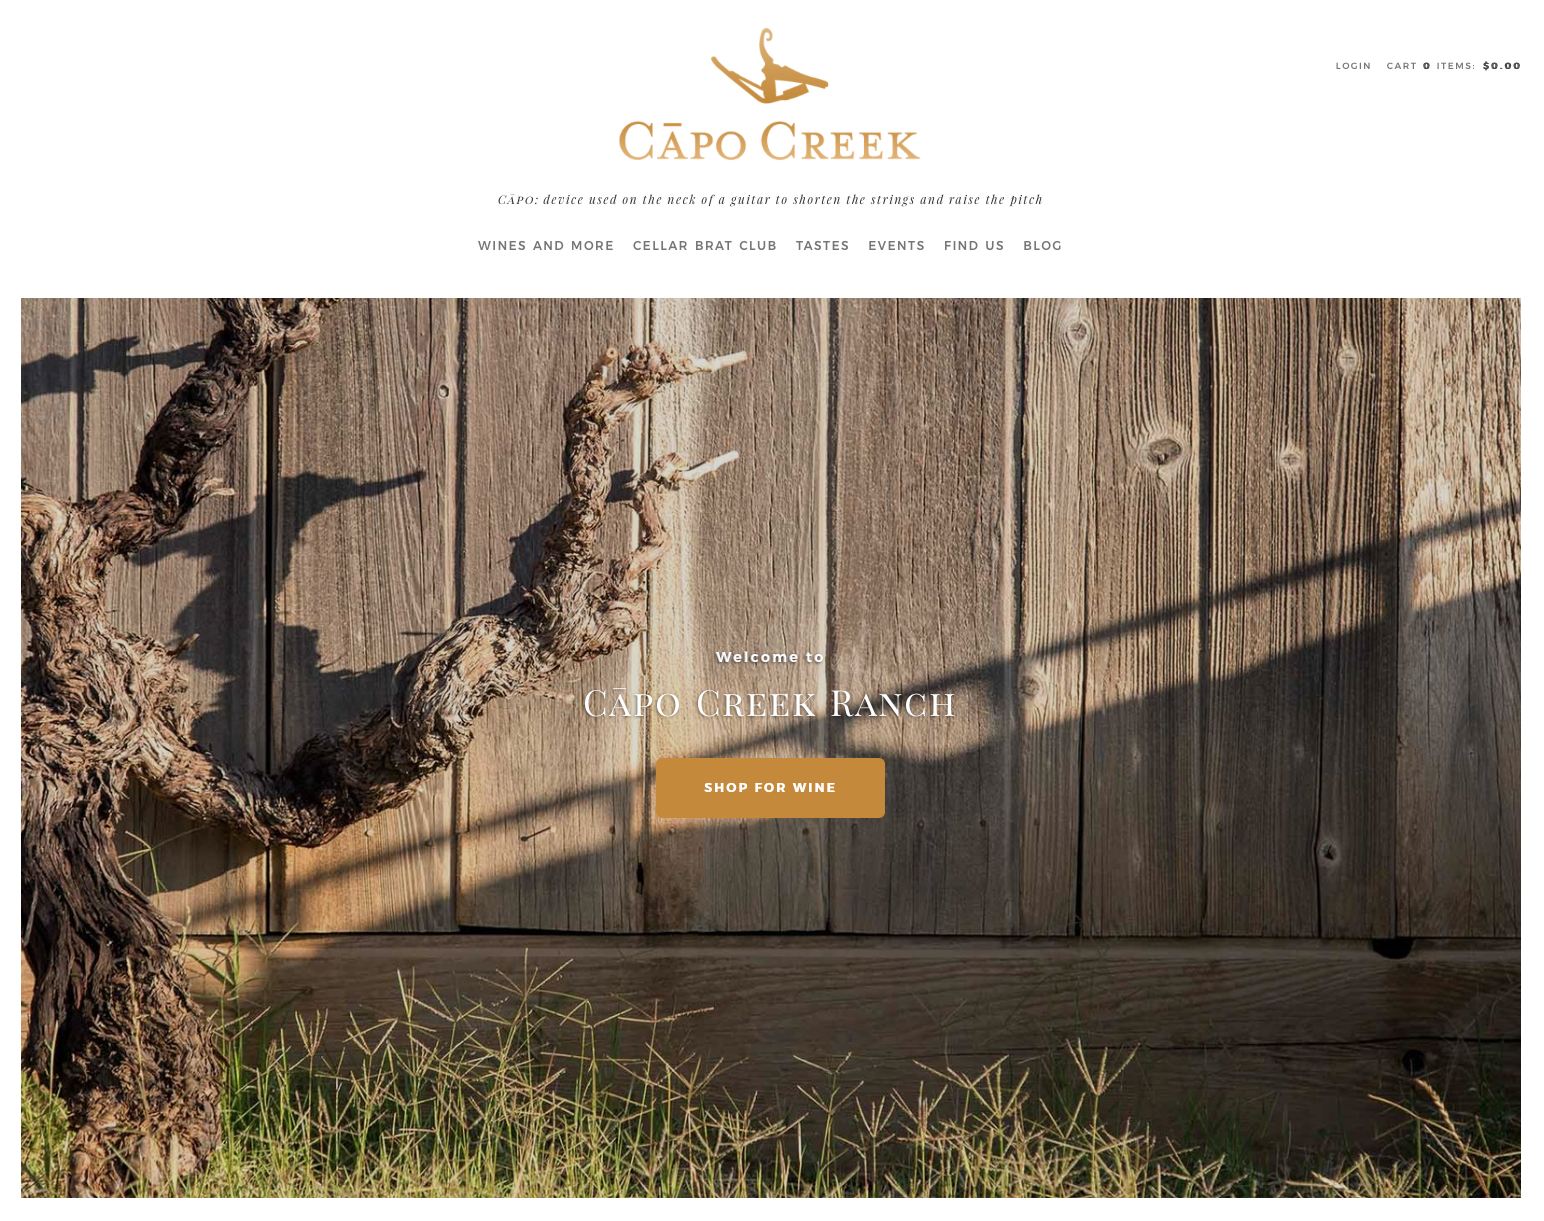 Sonoma Bottle also does landscape photography.  Here our image is the landing page header for Capo Creek Winery.